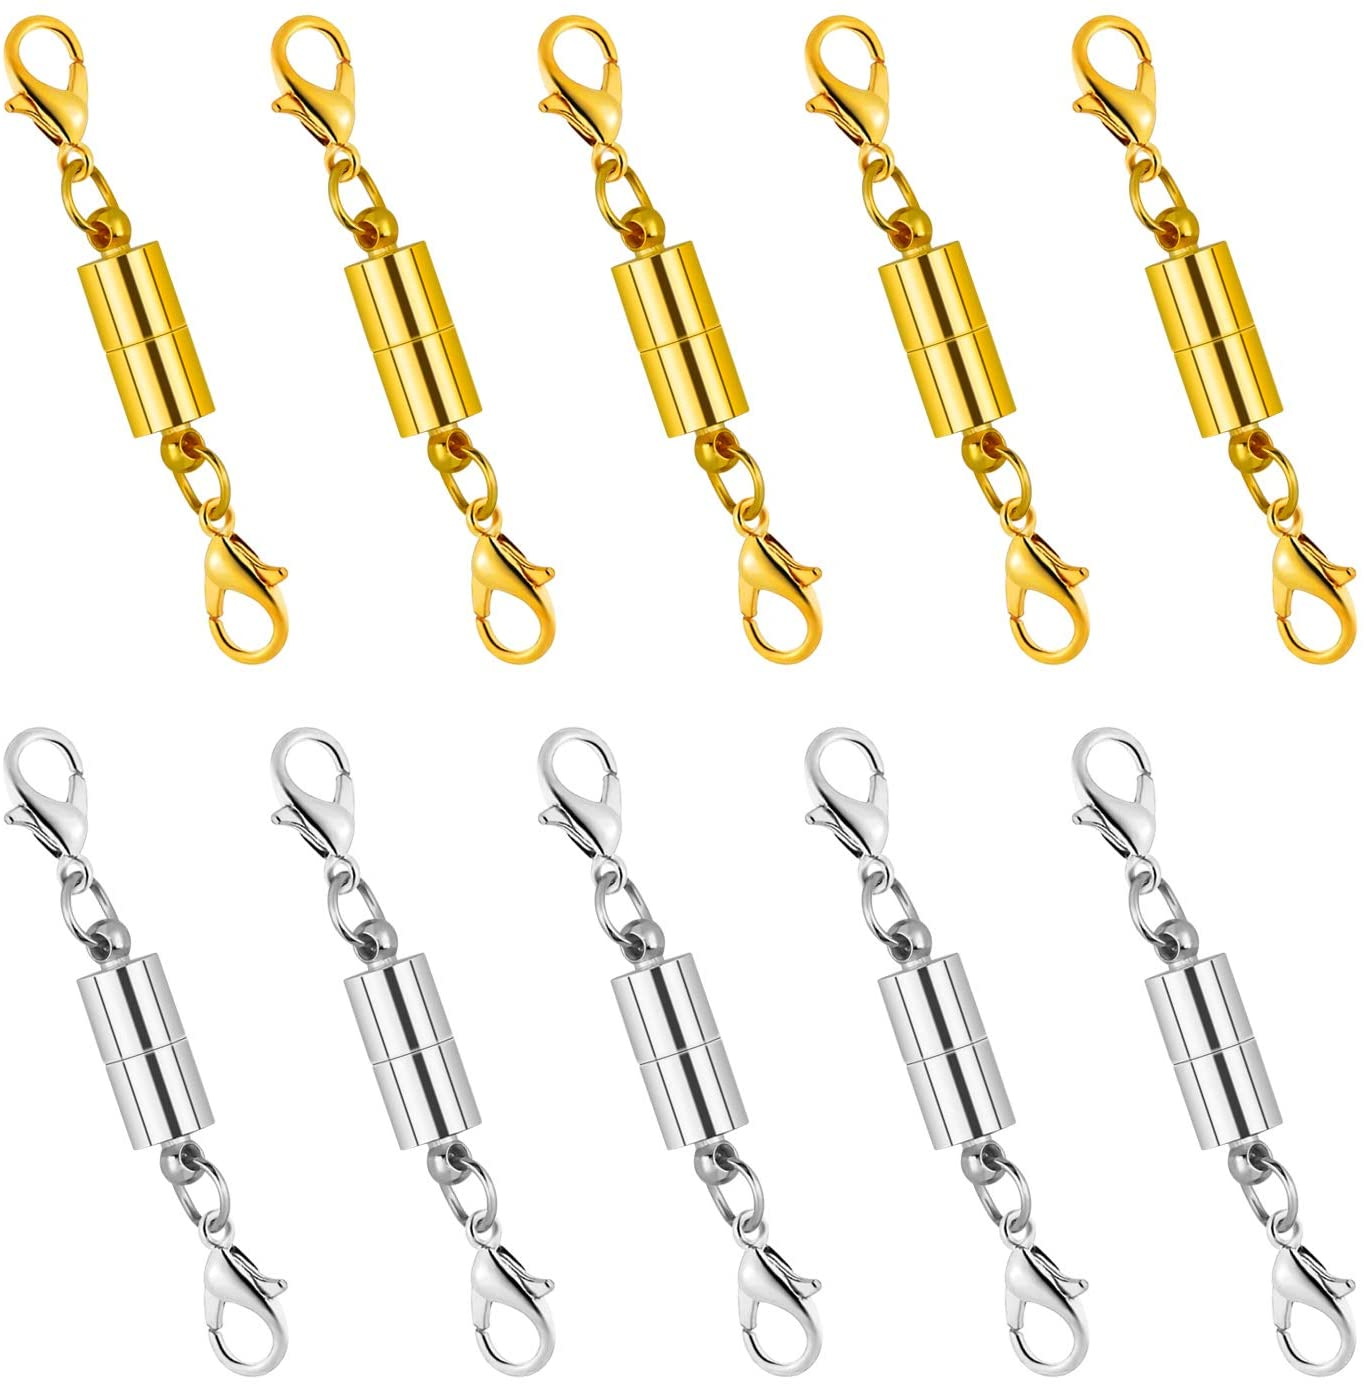 10X Round Magnetic Clasps Claw Chain Extender Bracelet Necklace Jewelry Finding